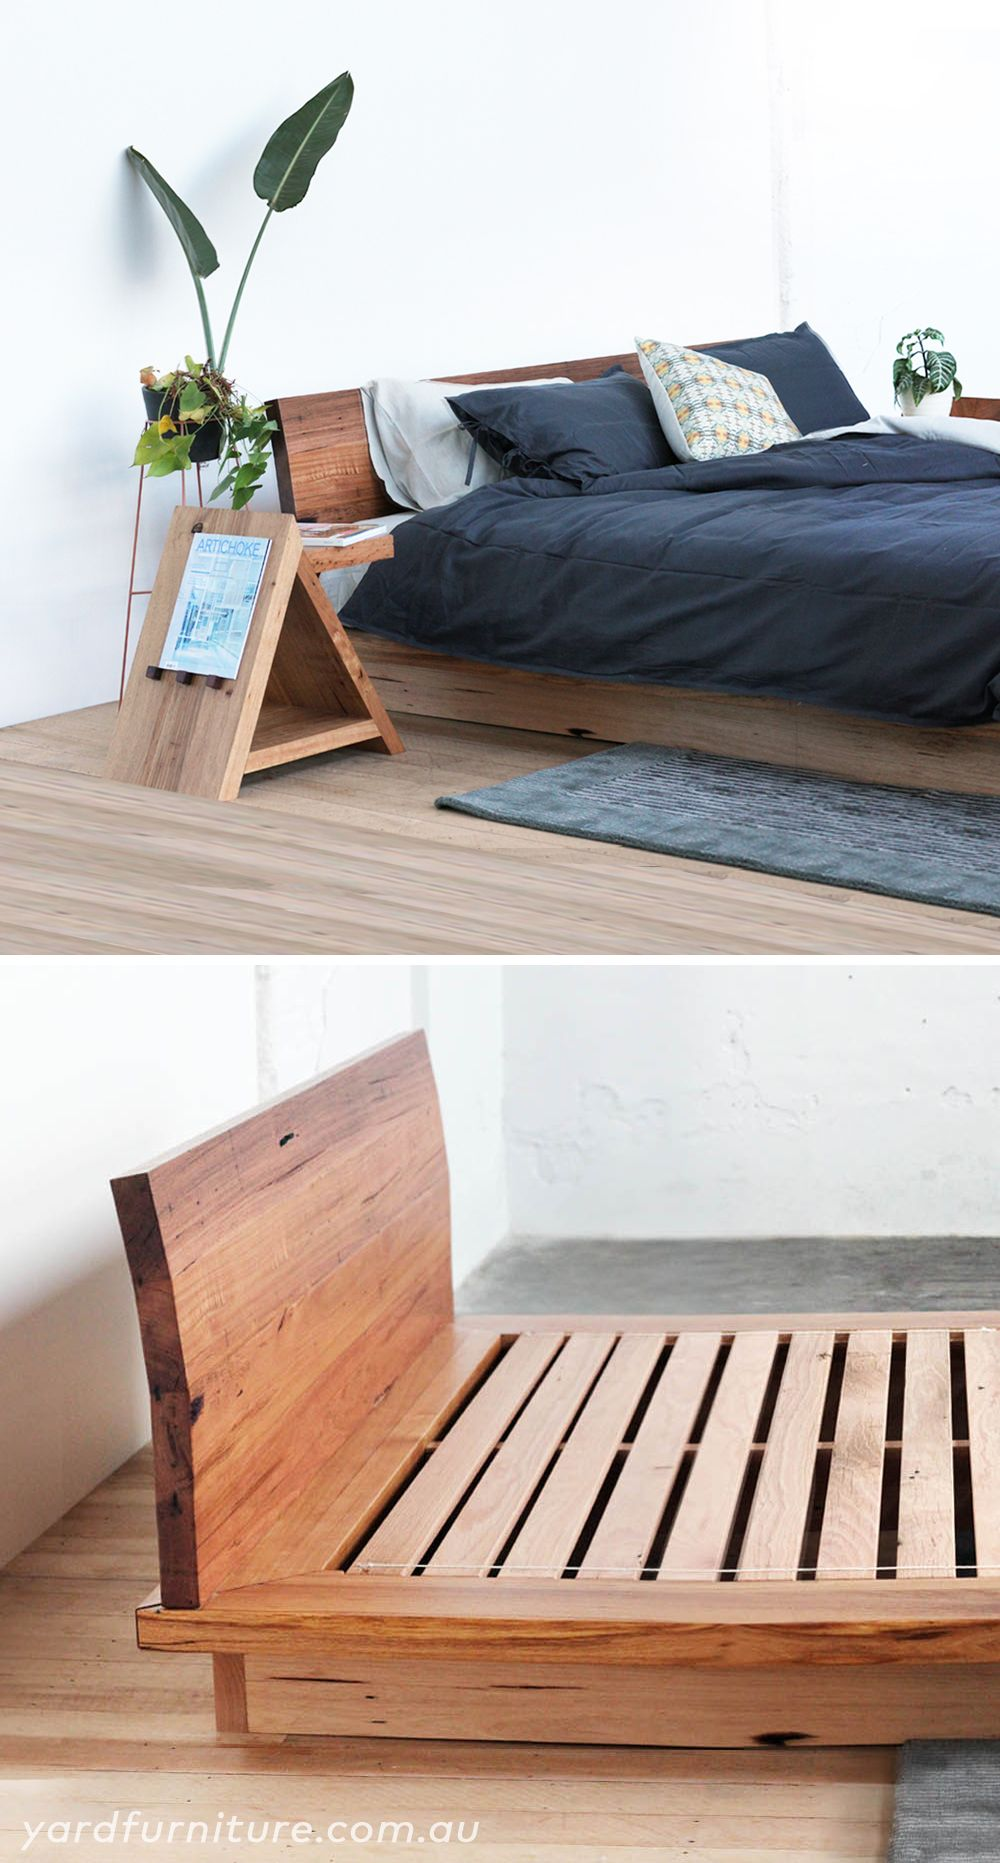 Sunrise Platform Bed Yard Furniture Made From Entirely Recycled